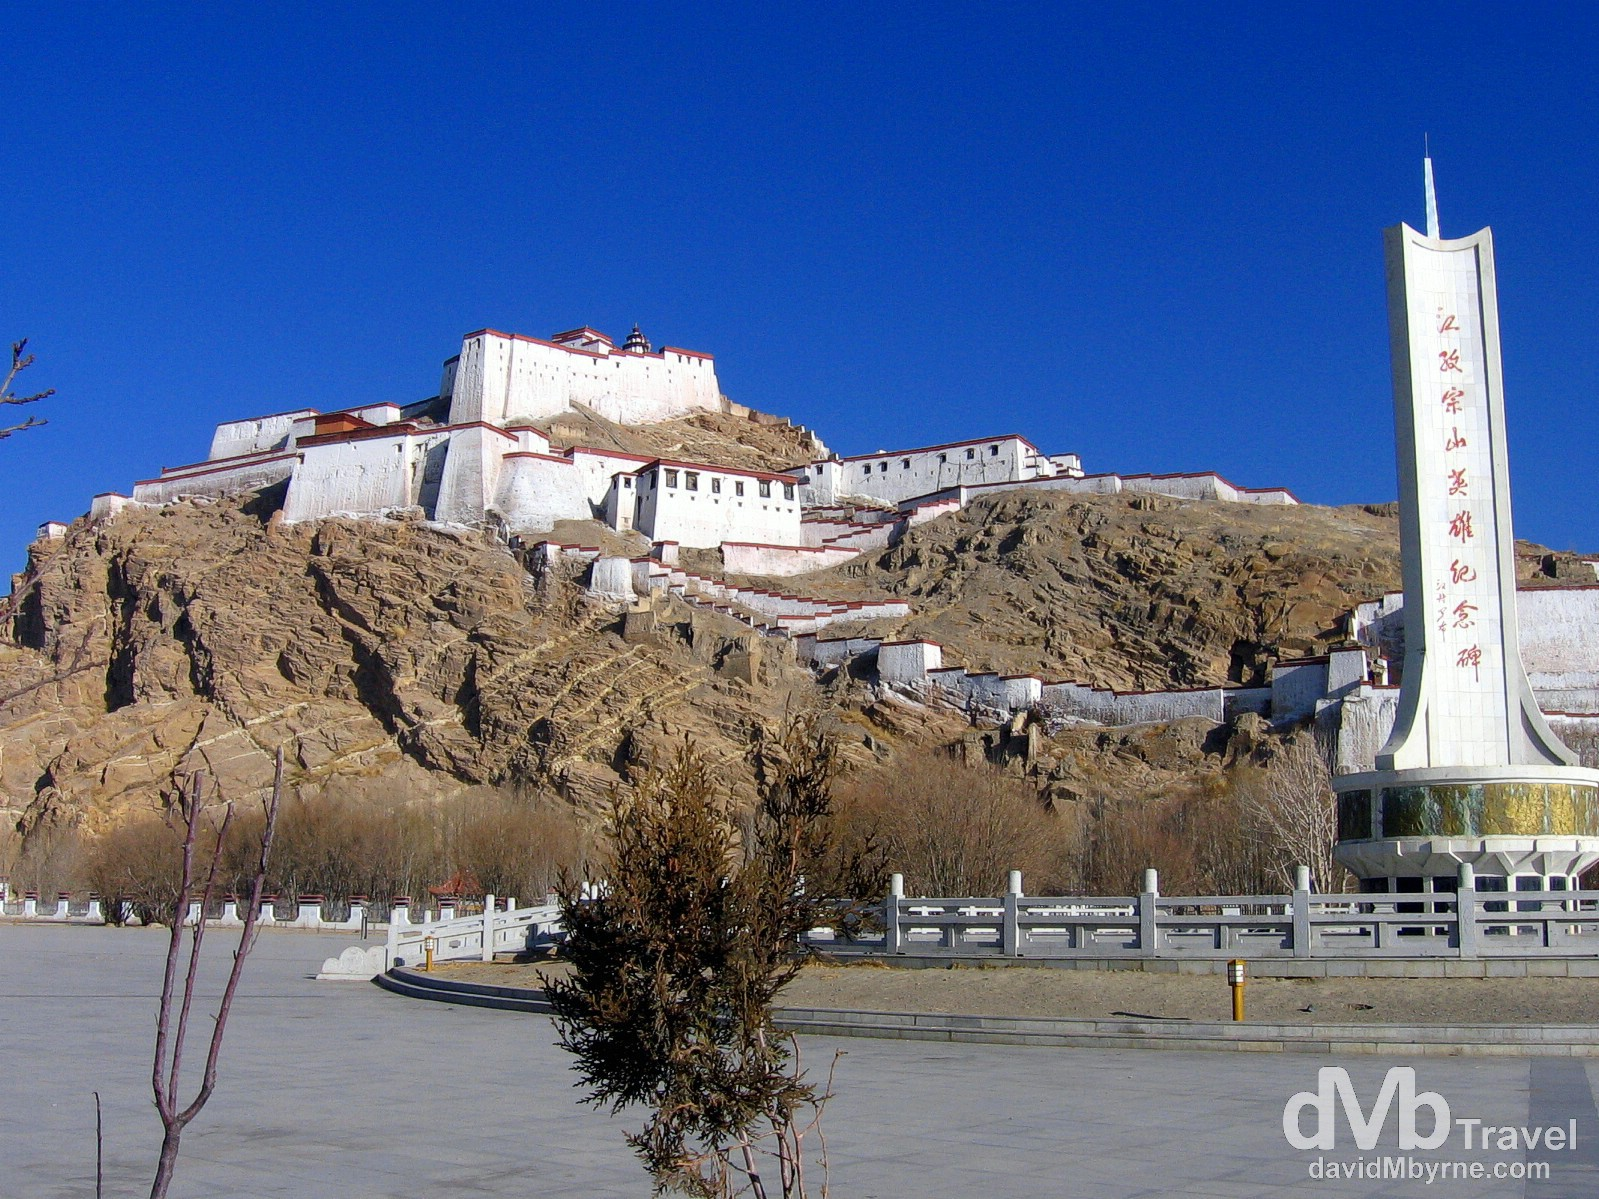 Dzong, the Old Fort in Gyantse, Tibet. March 1st, 2008.